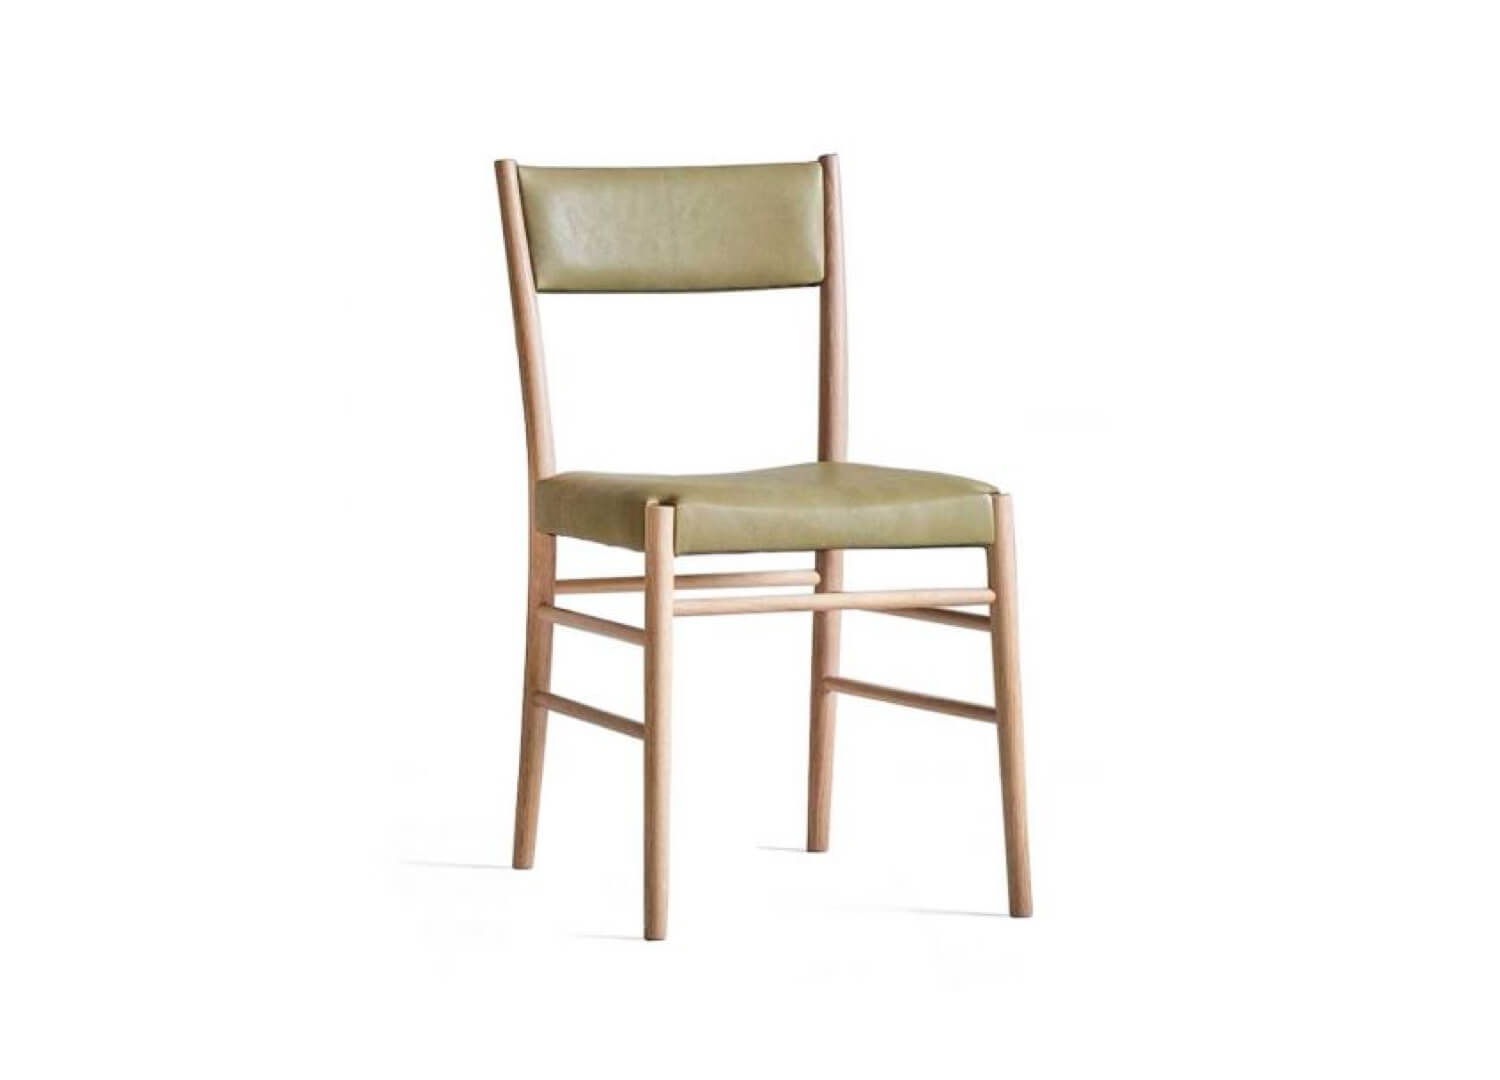 Fantastic Avery Dining Chair By Pinch For Spence And Lyda Est Living Uwap Interior Chair Design Uwaporg